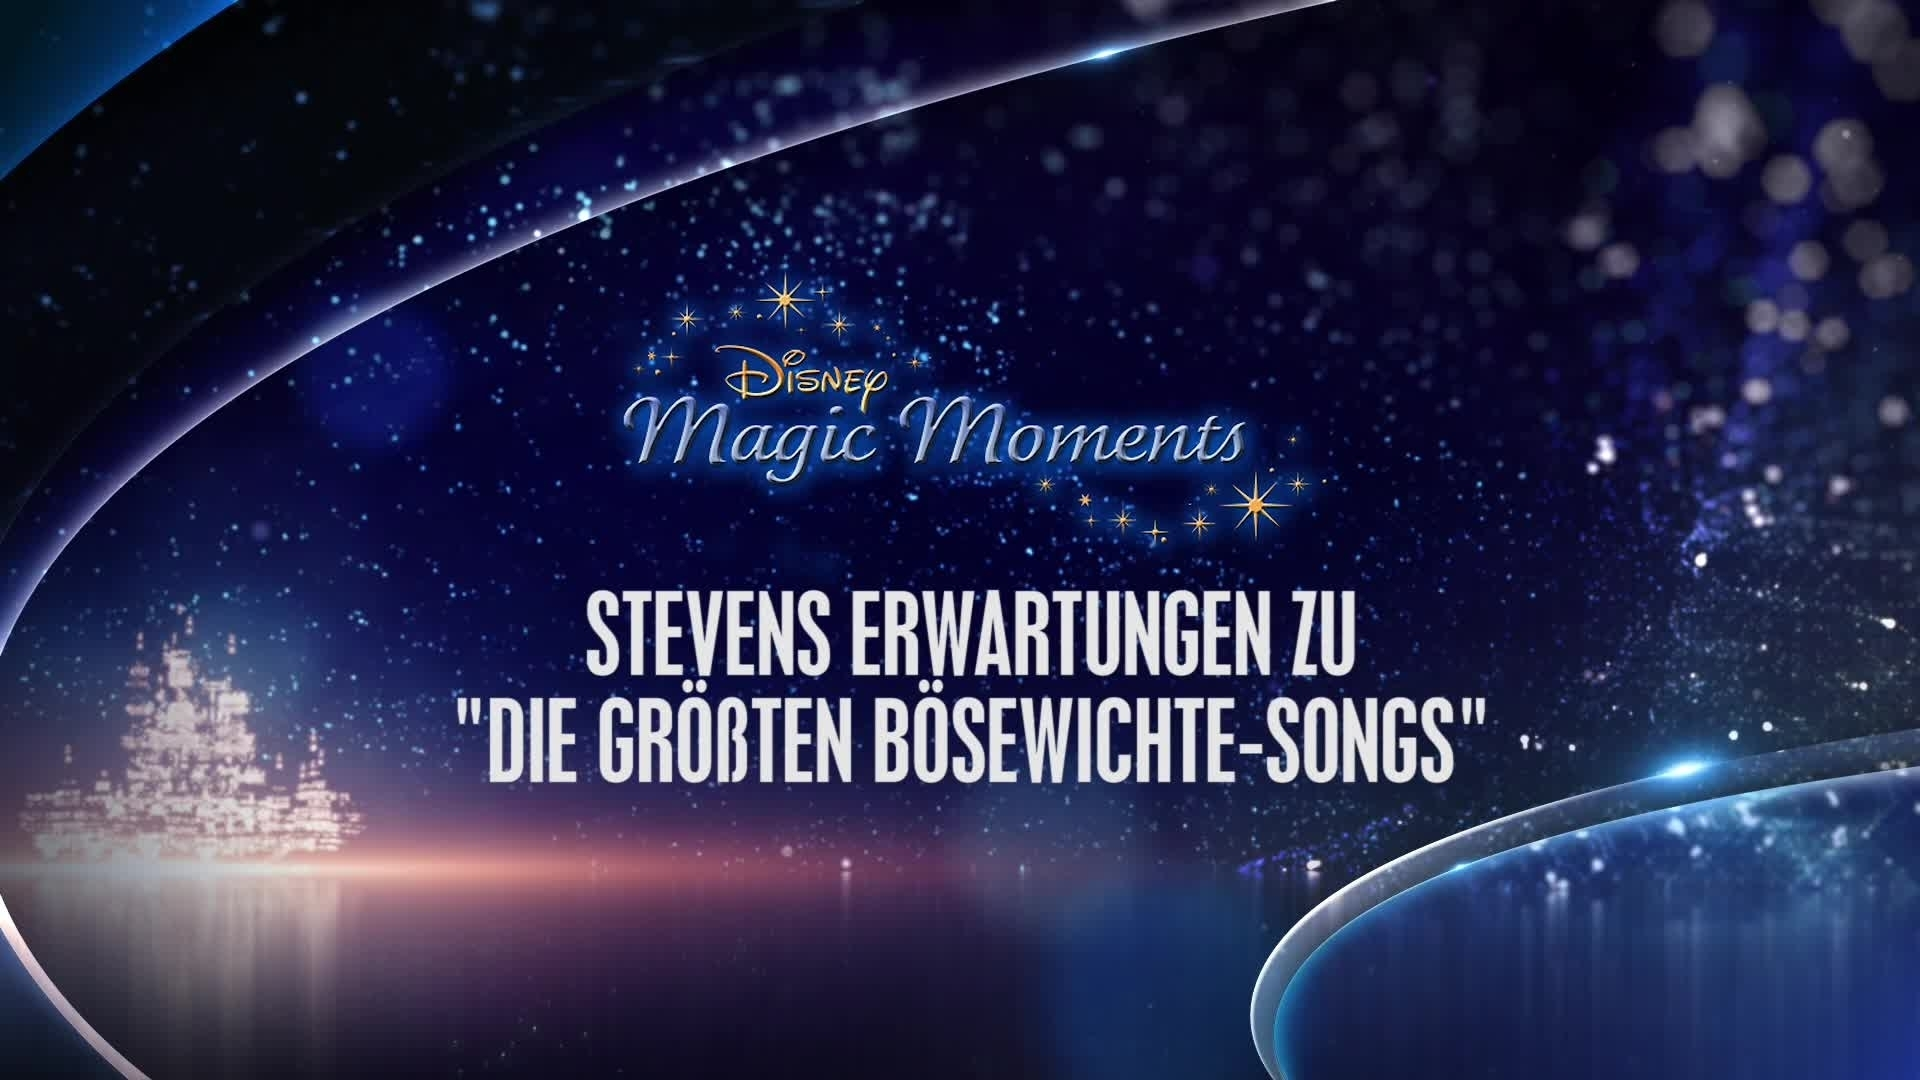 Magic Moments - Erwartungen zu Bösewichte Songs